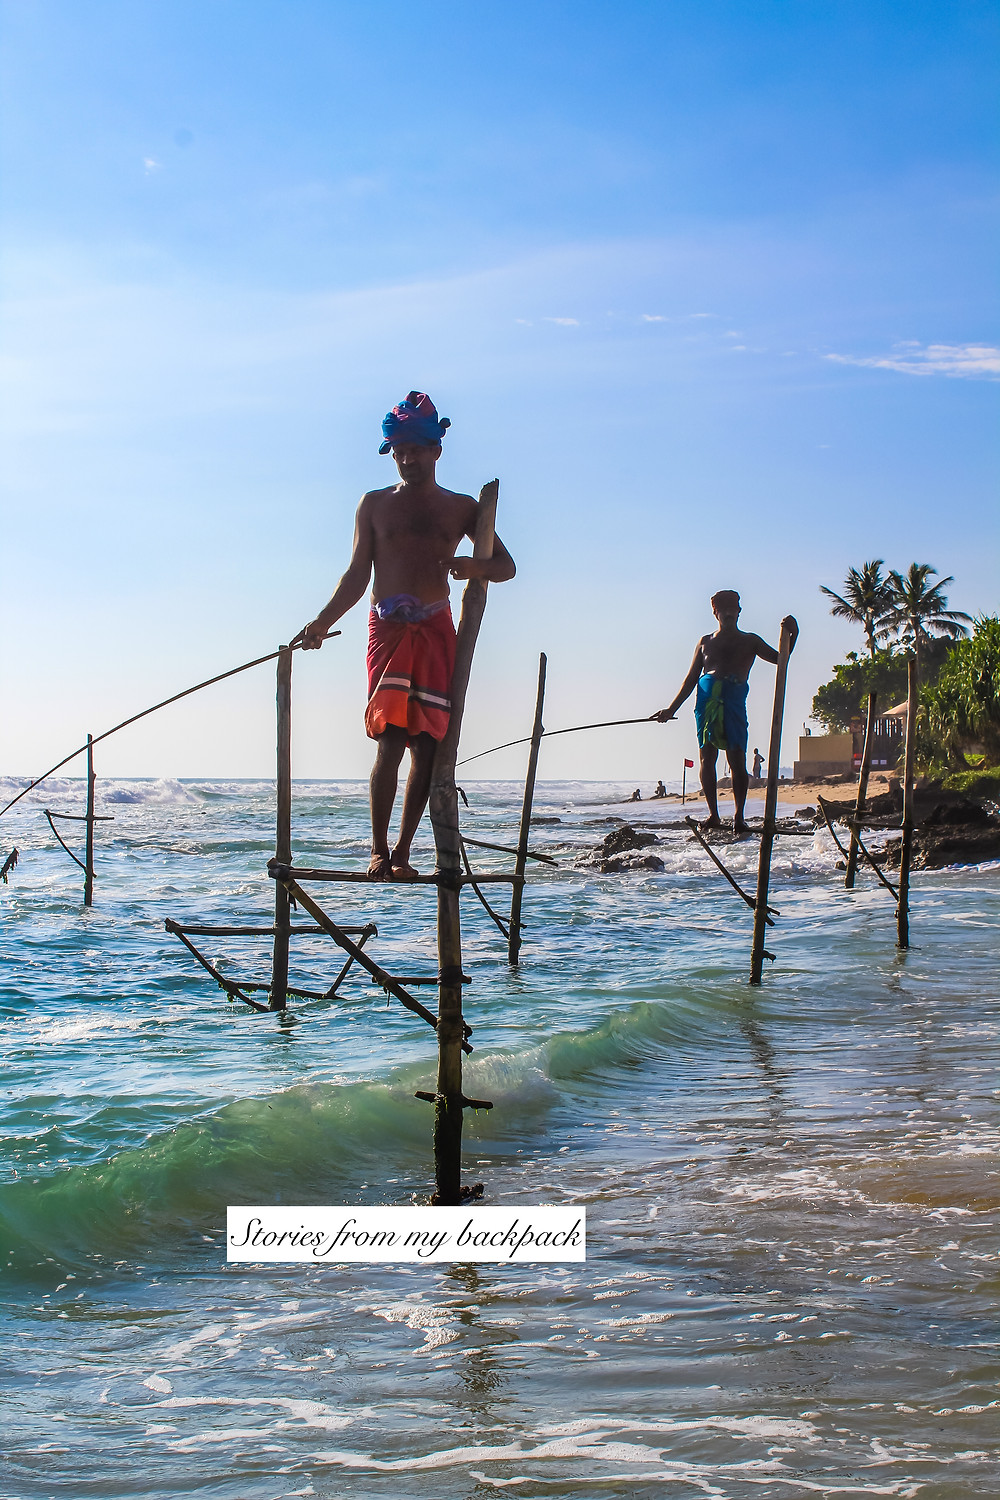 stilt fishermen, stilt fishing in Sri Lanka, where to find stilt fishermen in Sri Lanka, stilt fishermen photo spots in Galle, traditional fishing methods in Sri Lanka, stilt fishing in Weligama, Unawatuna